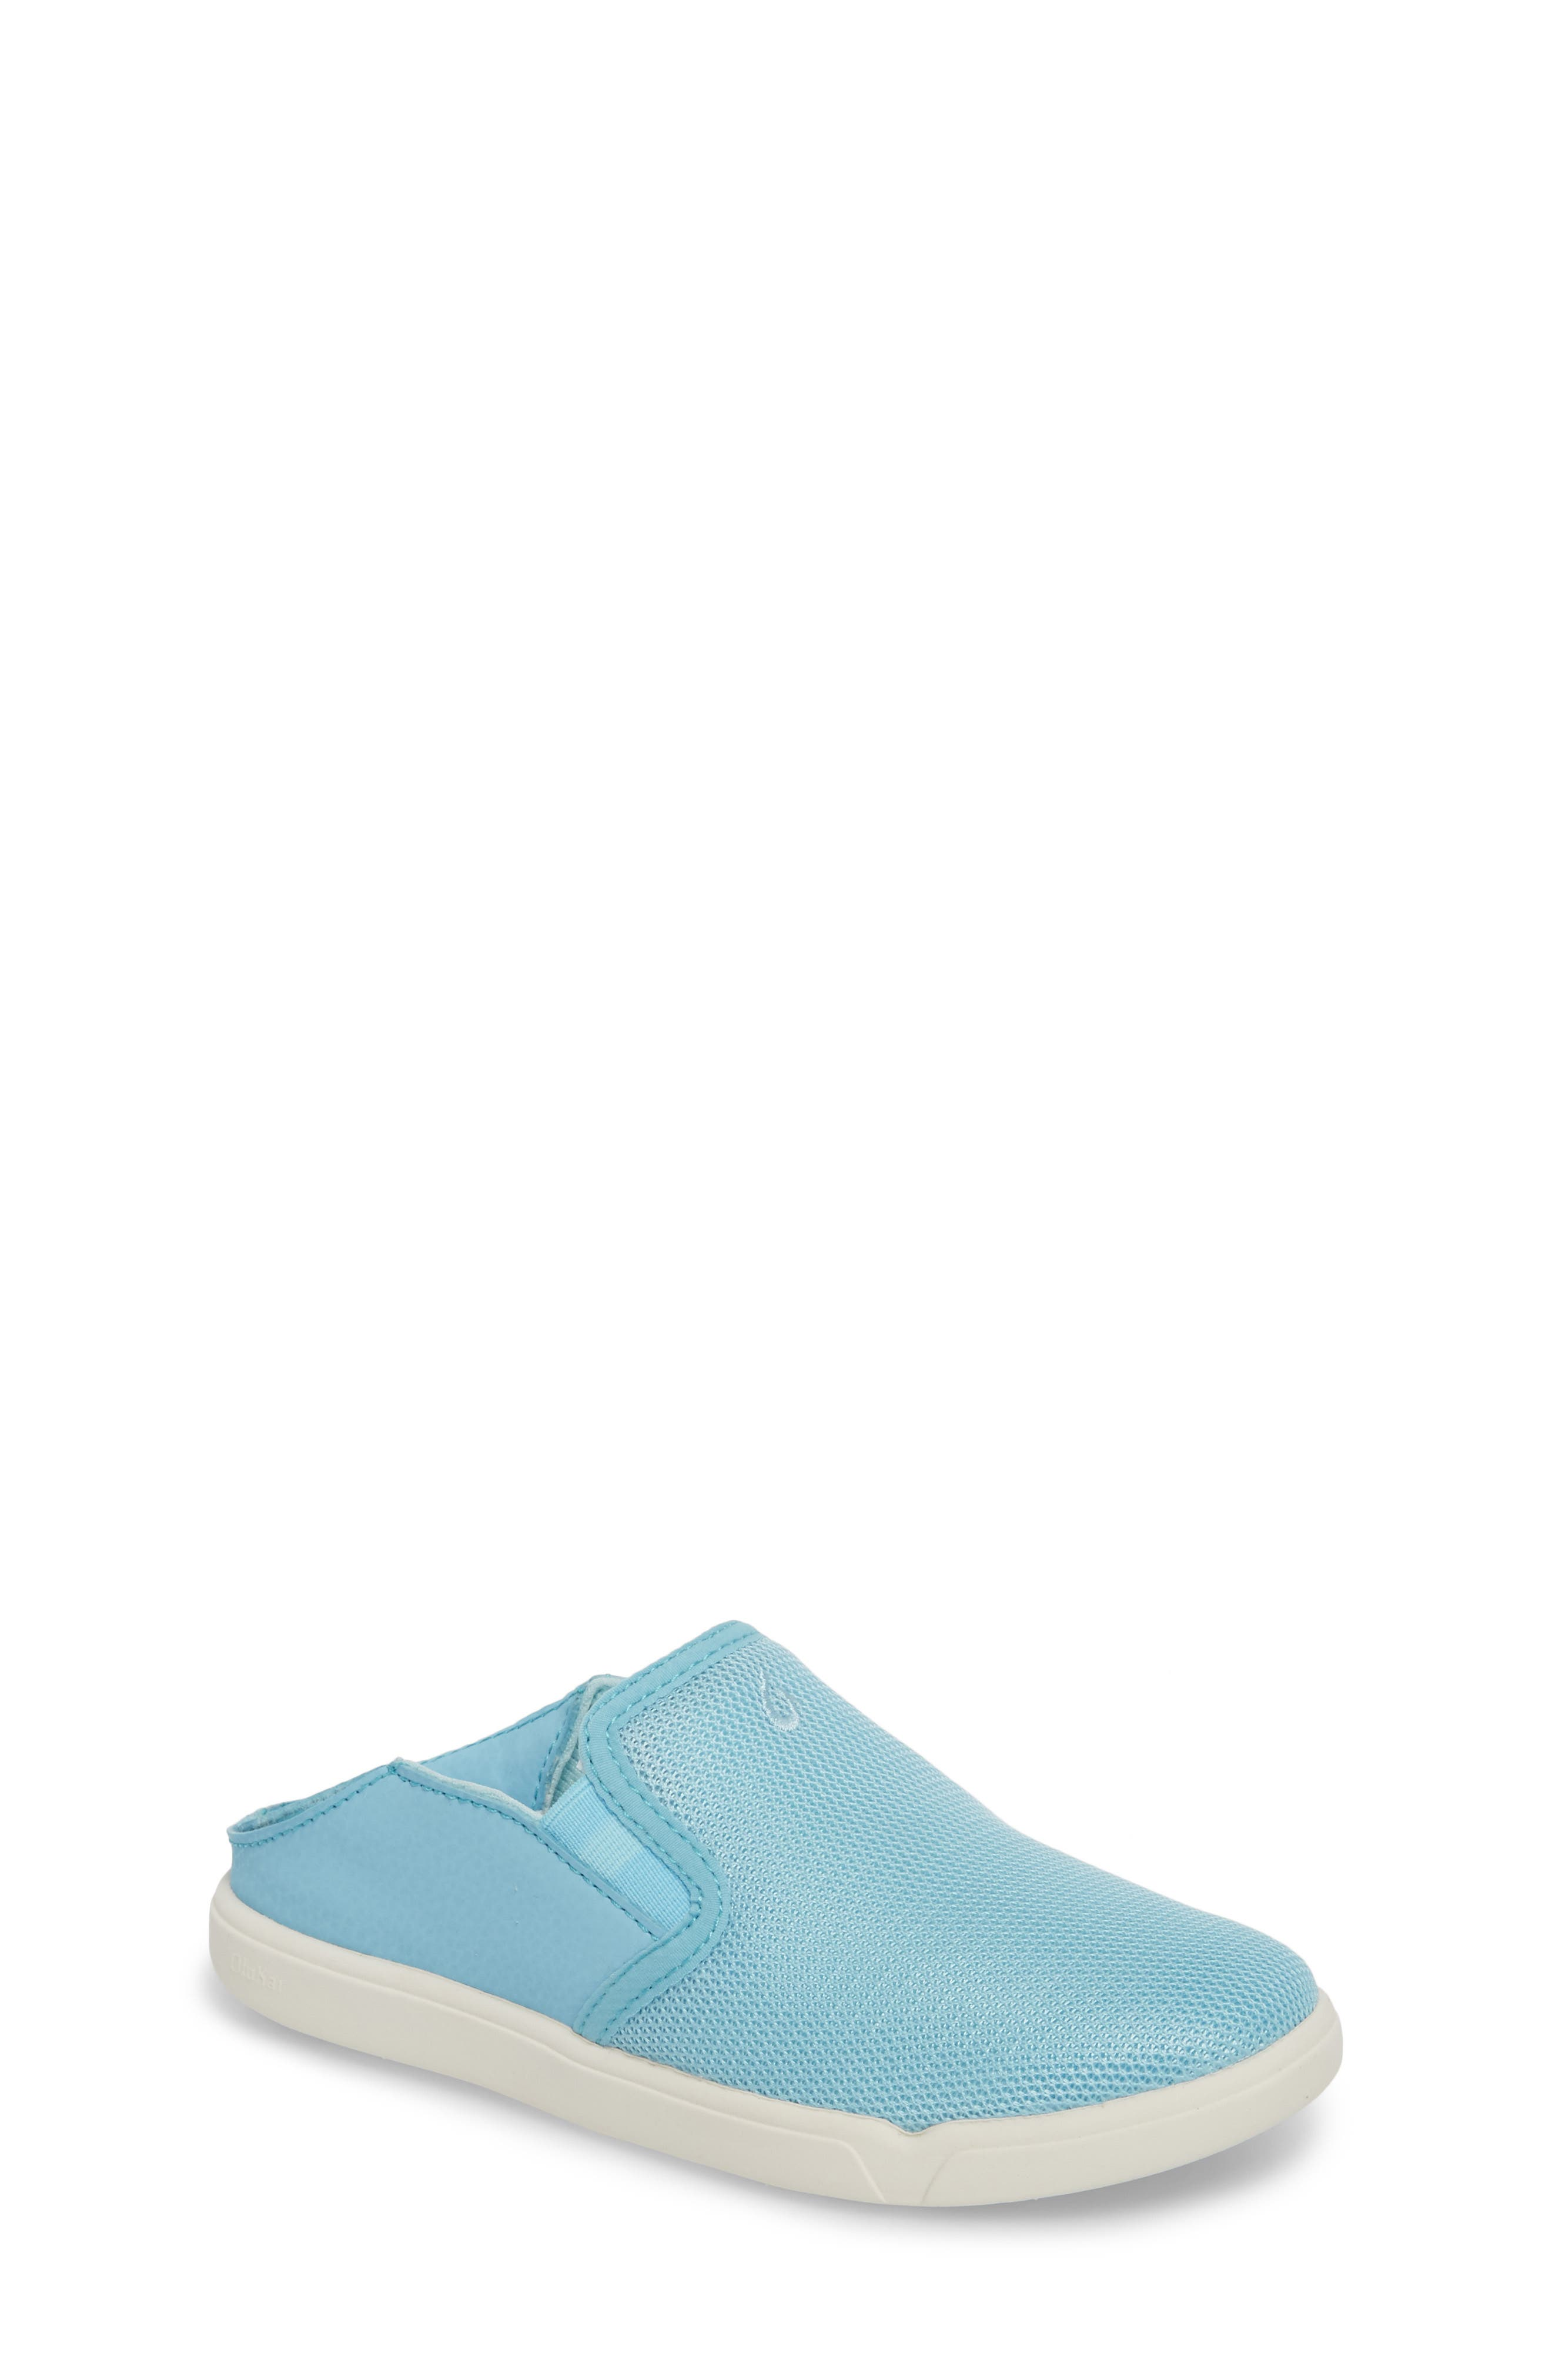 Pehuea Maka Collapsible Slip-On,                         Main,                         color, Cotton Candy/ Clearwater